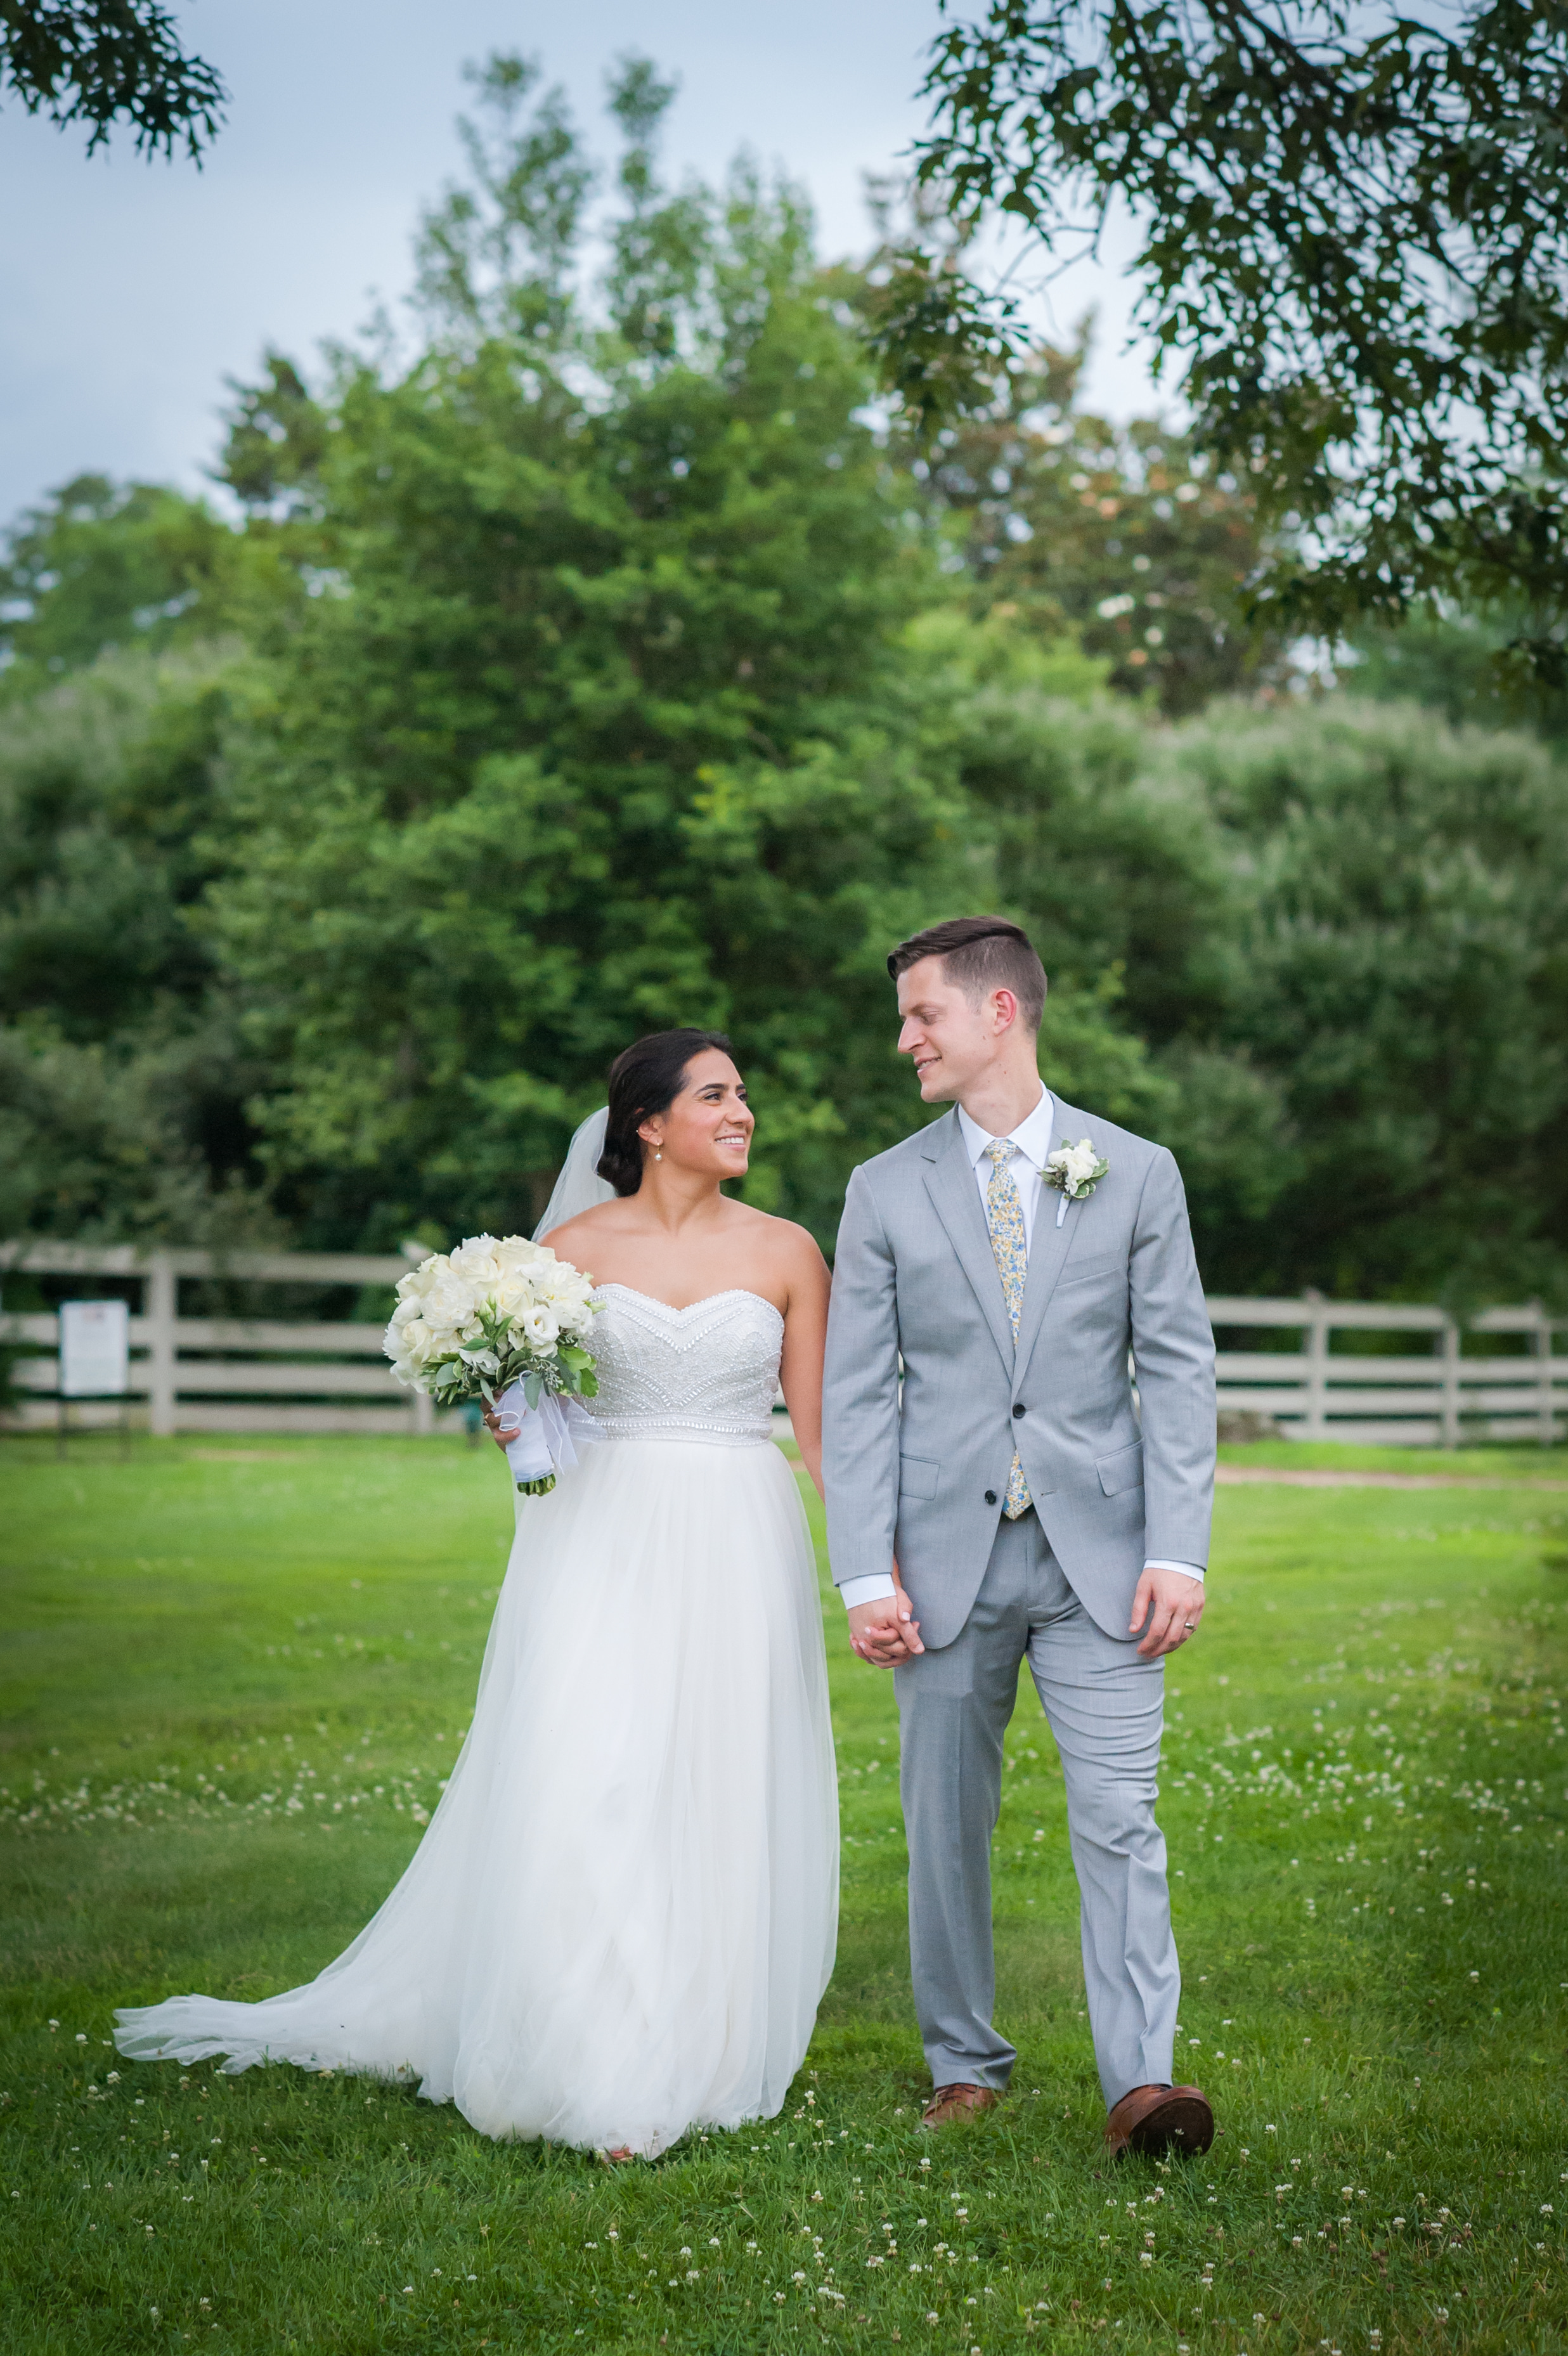 062318 VA Sara Smith + Rob - Jamie Zunno Photography LC DHPortraits-30.jpg